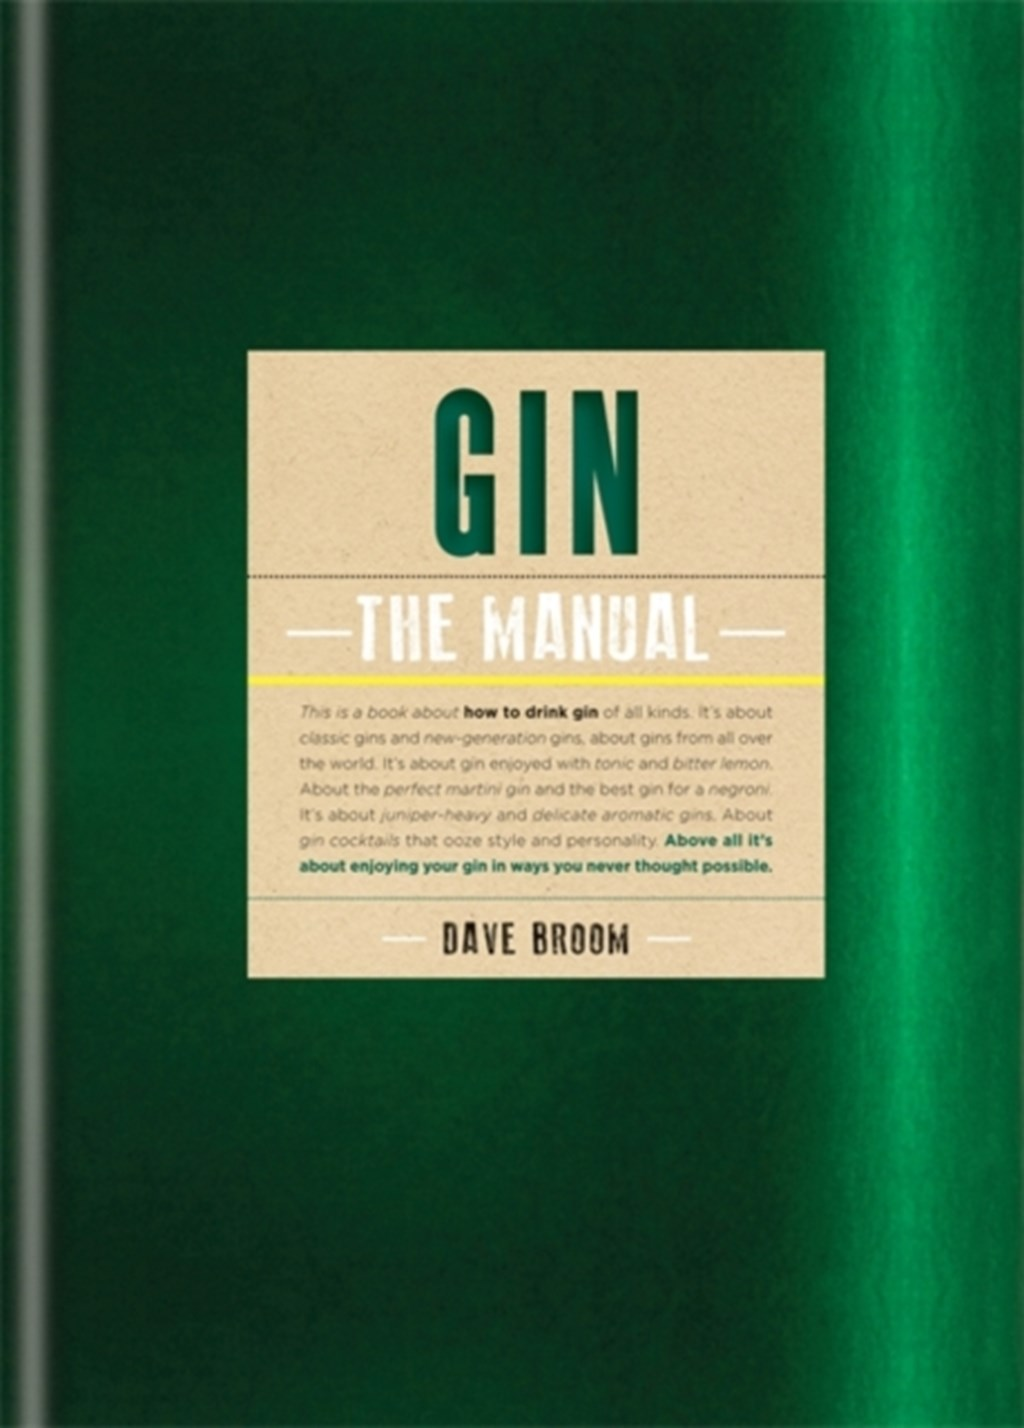 GIN - THE MANUAL